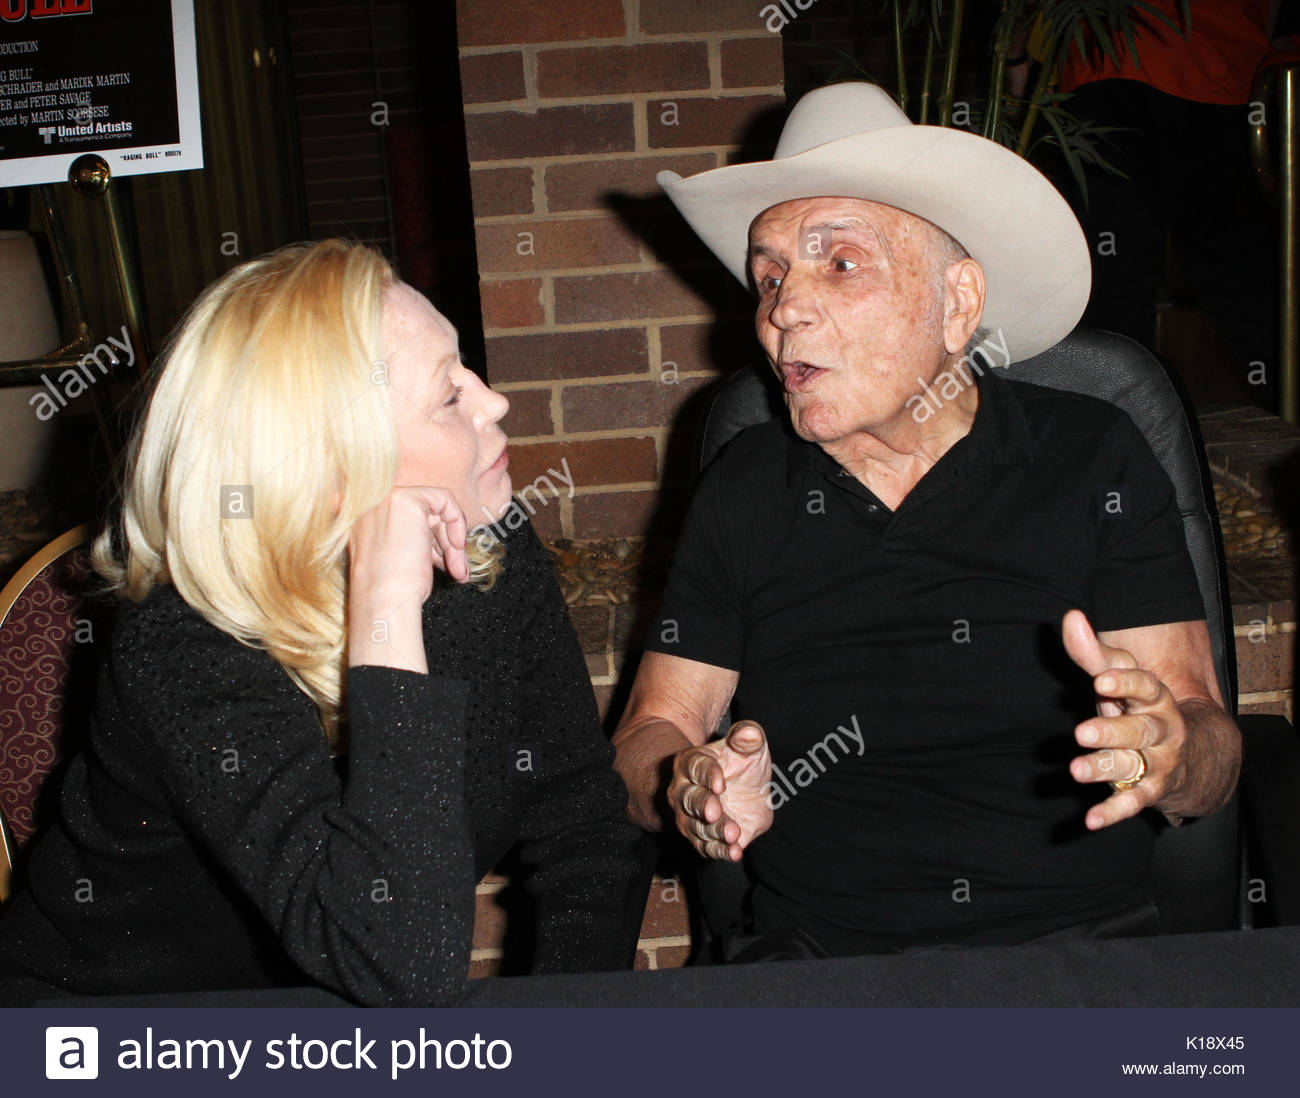 Jake Lamotta Denise Baker 70263 | ENEWS